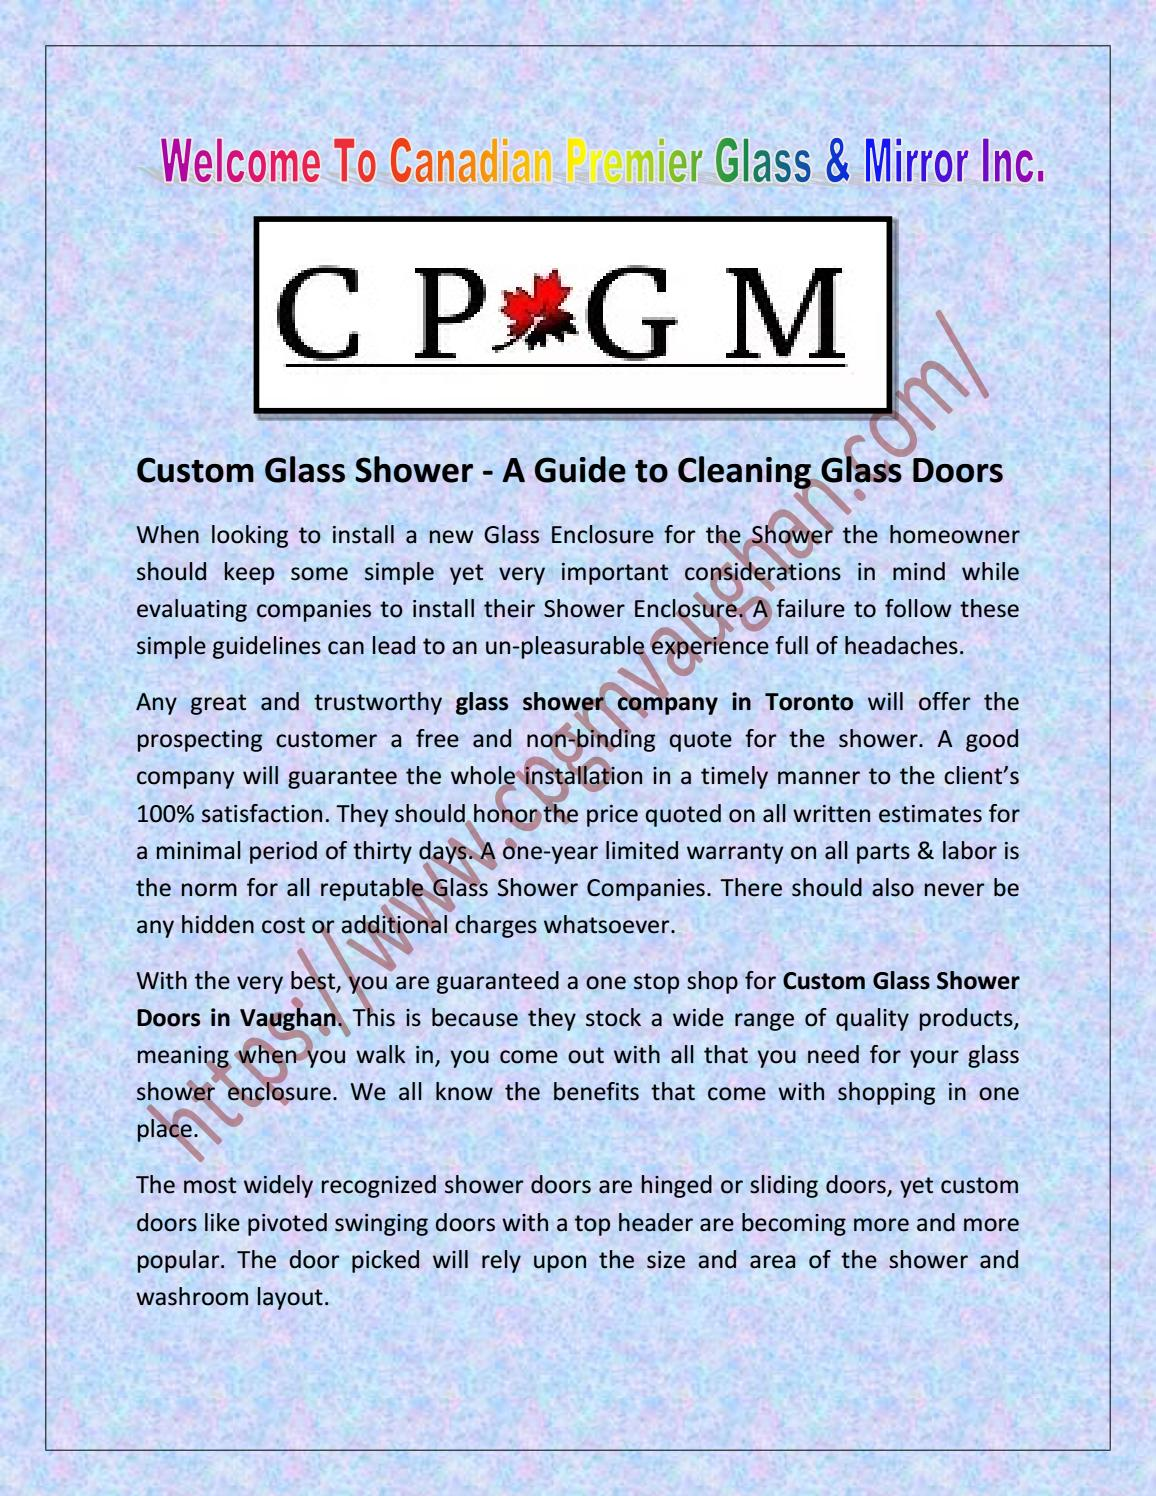 Custom Glass Shower A Guide To Cleaning Glass Doors By